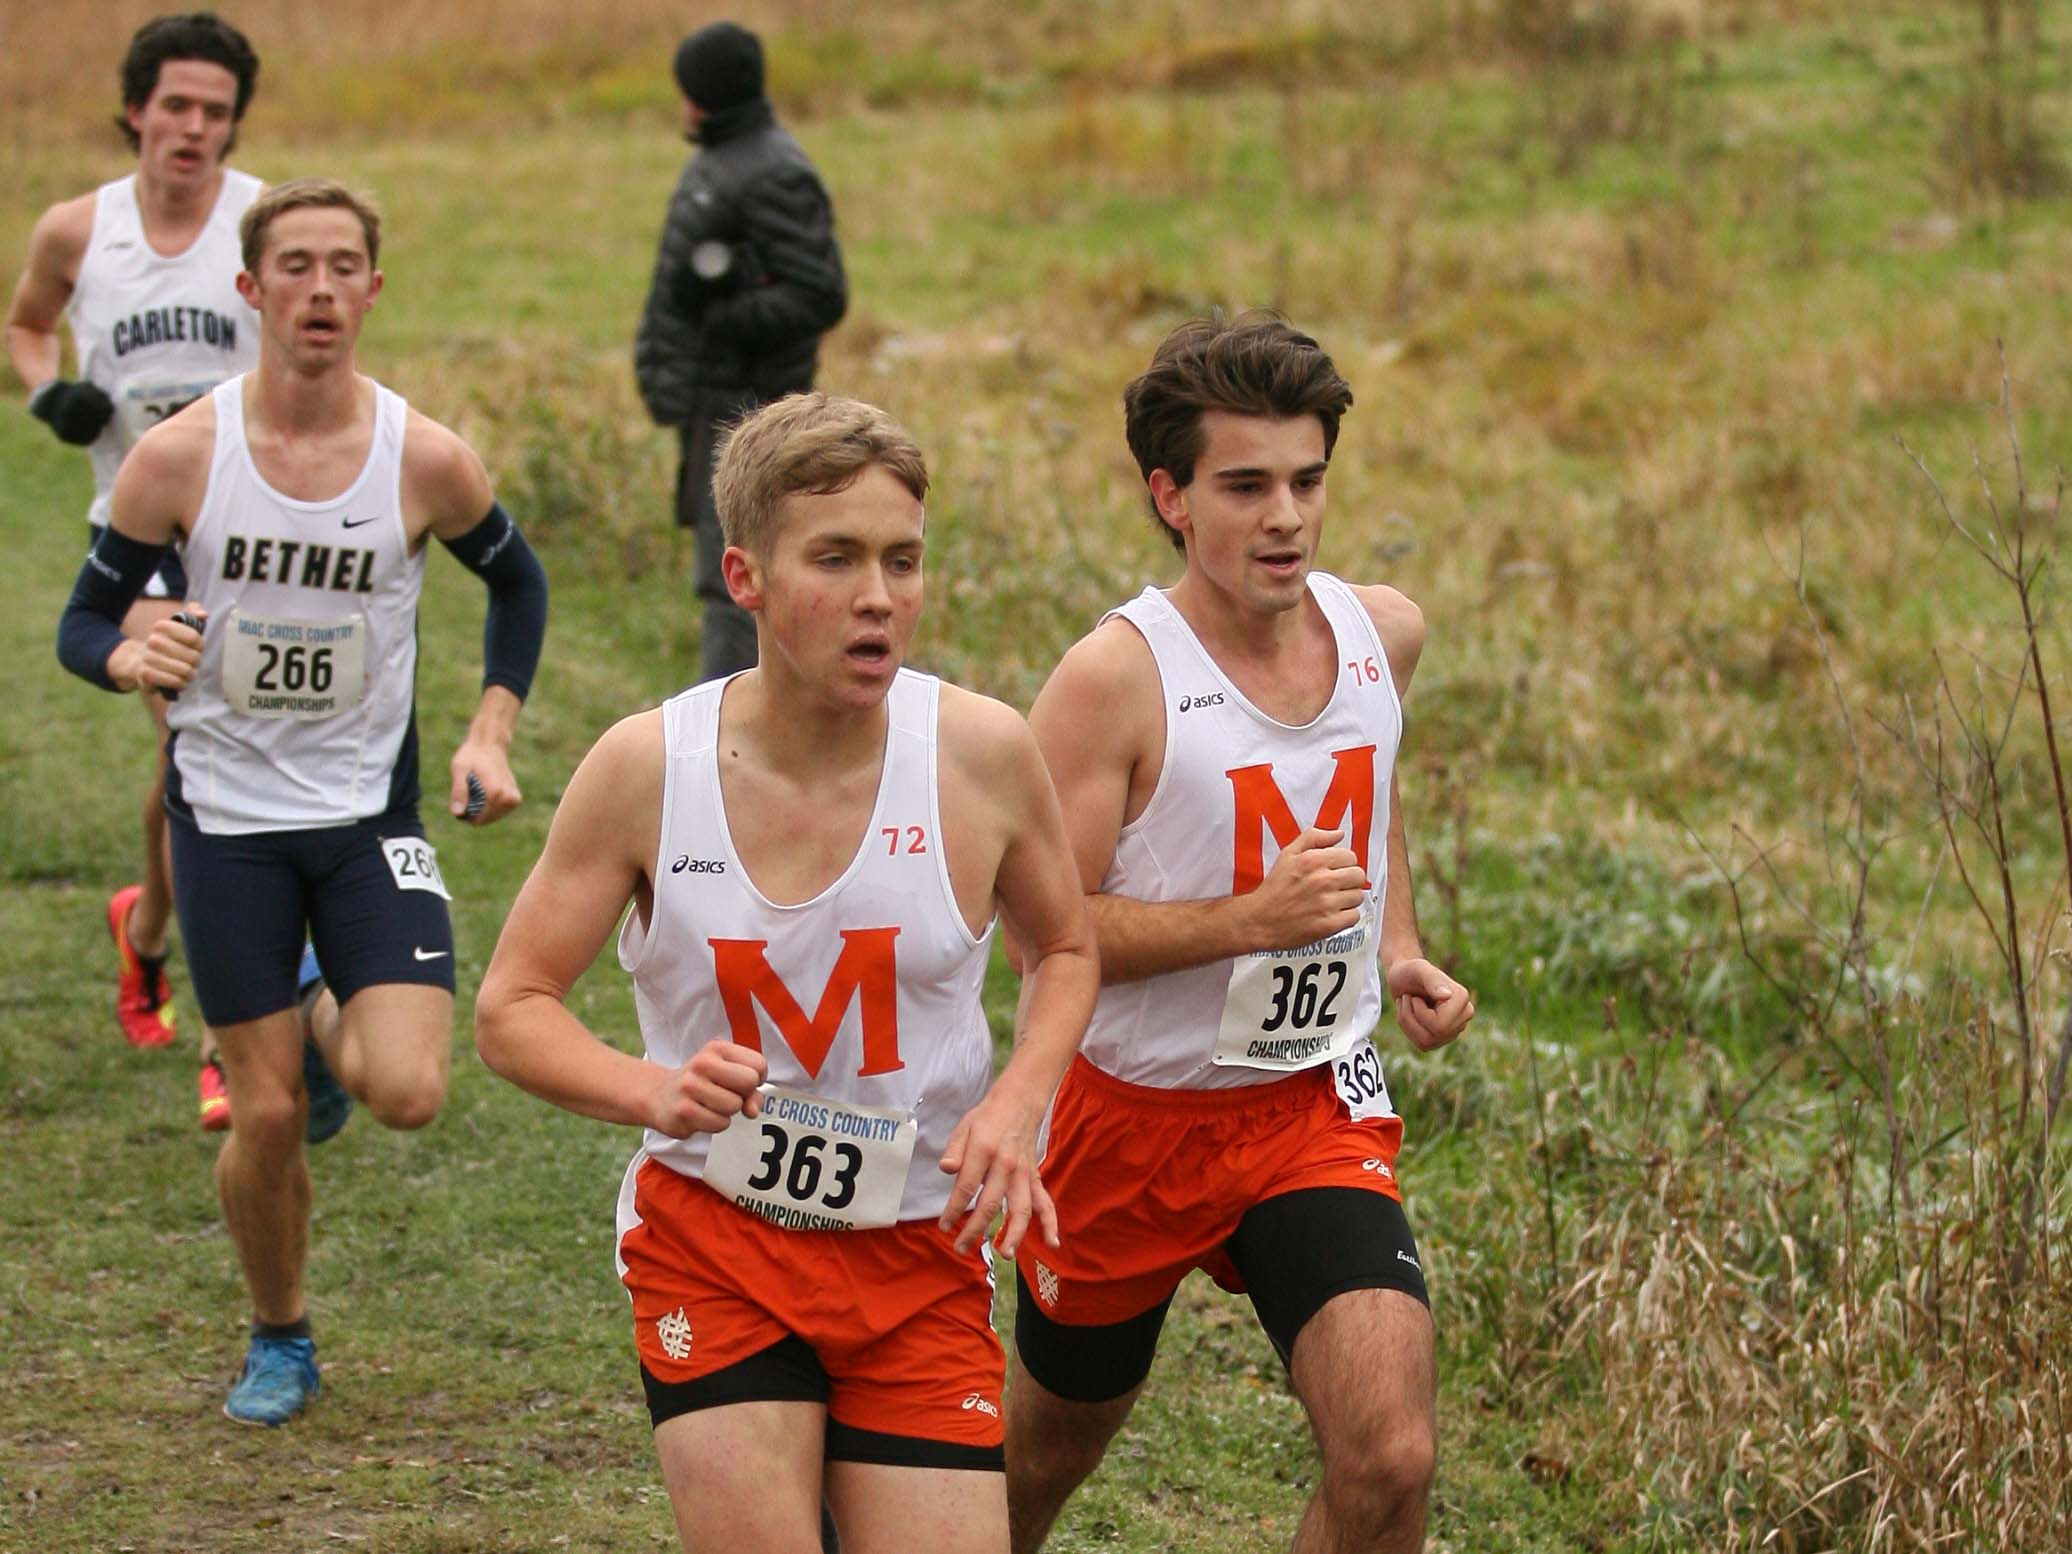 Adrian Johnson '21 and Peter Jarka-Sellers '20 run in the MIAC Championship. Both runners scored for Macalester, with a 50th place finish for Jarka-Sellers and a 63rd place finish for Johnson. Macalester finished seventh out of 11 teams. Photo courtesy of Bill Lepak.